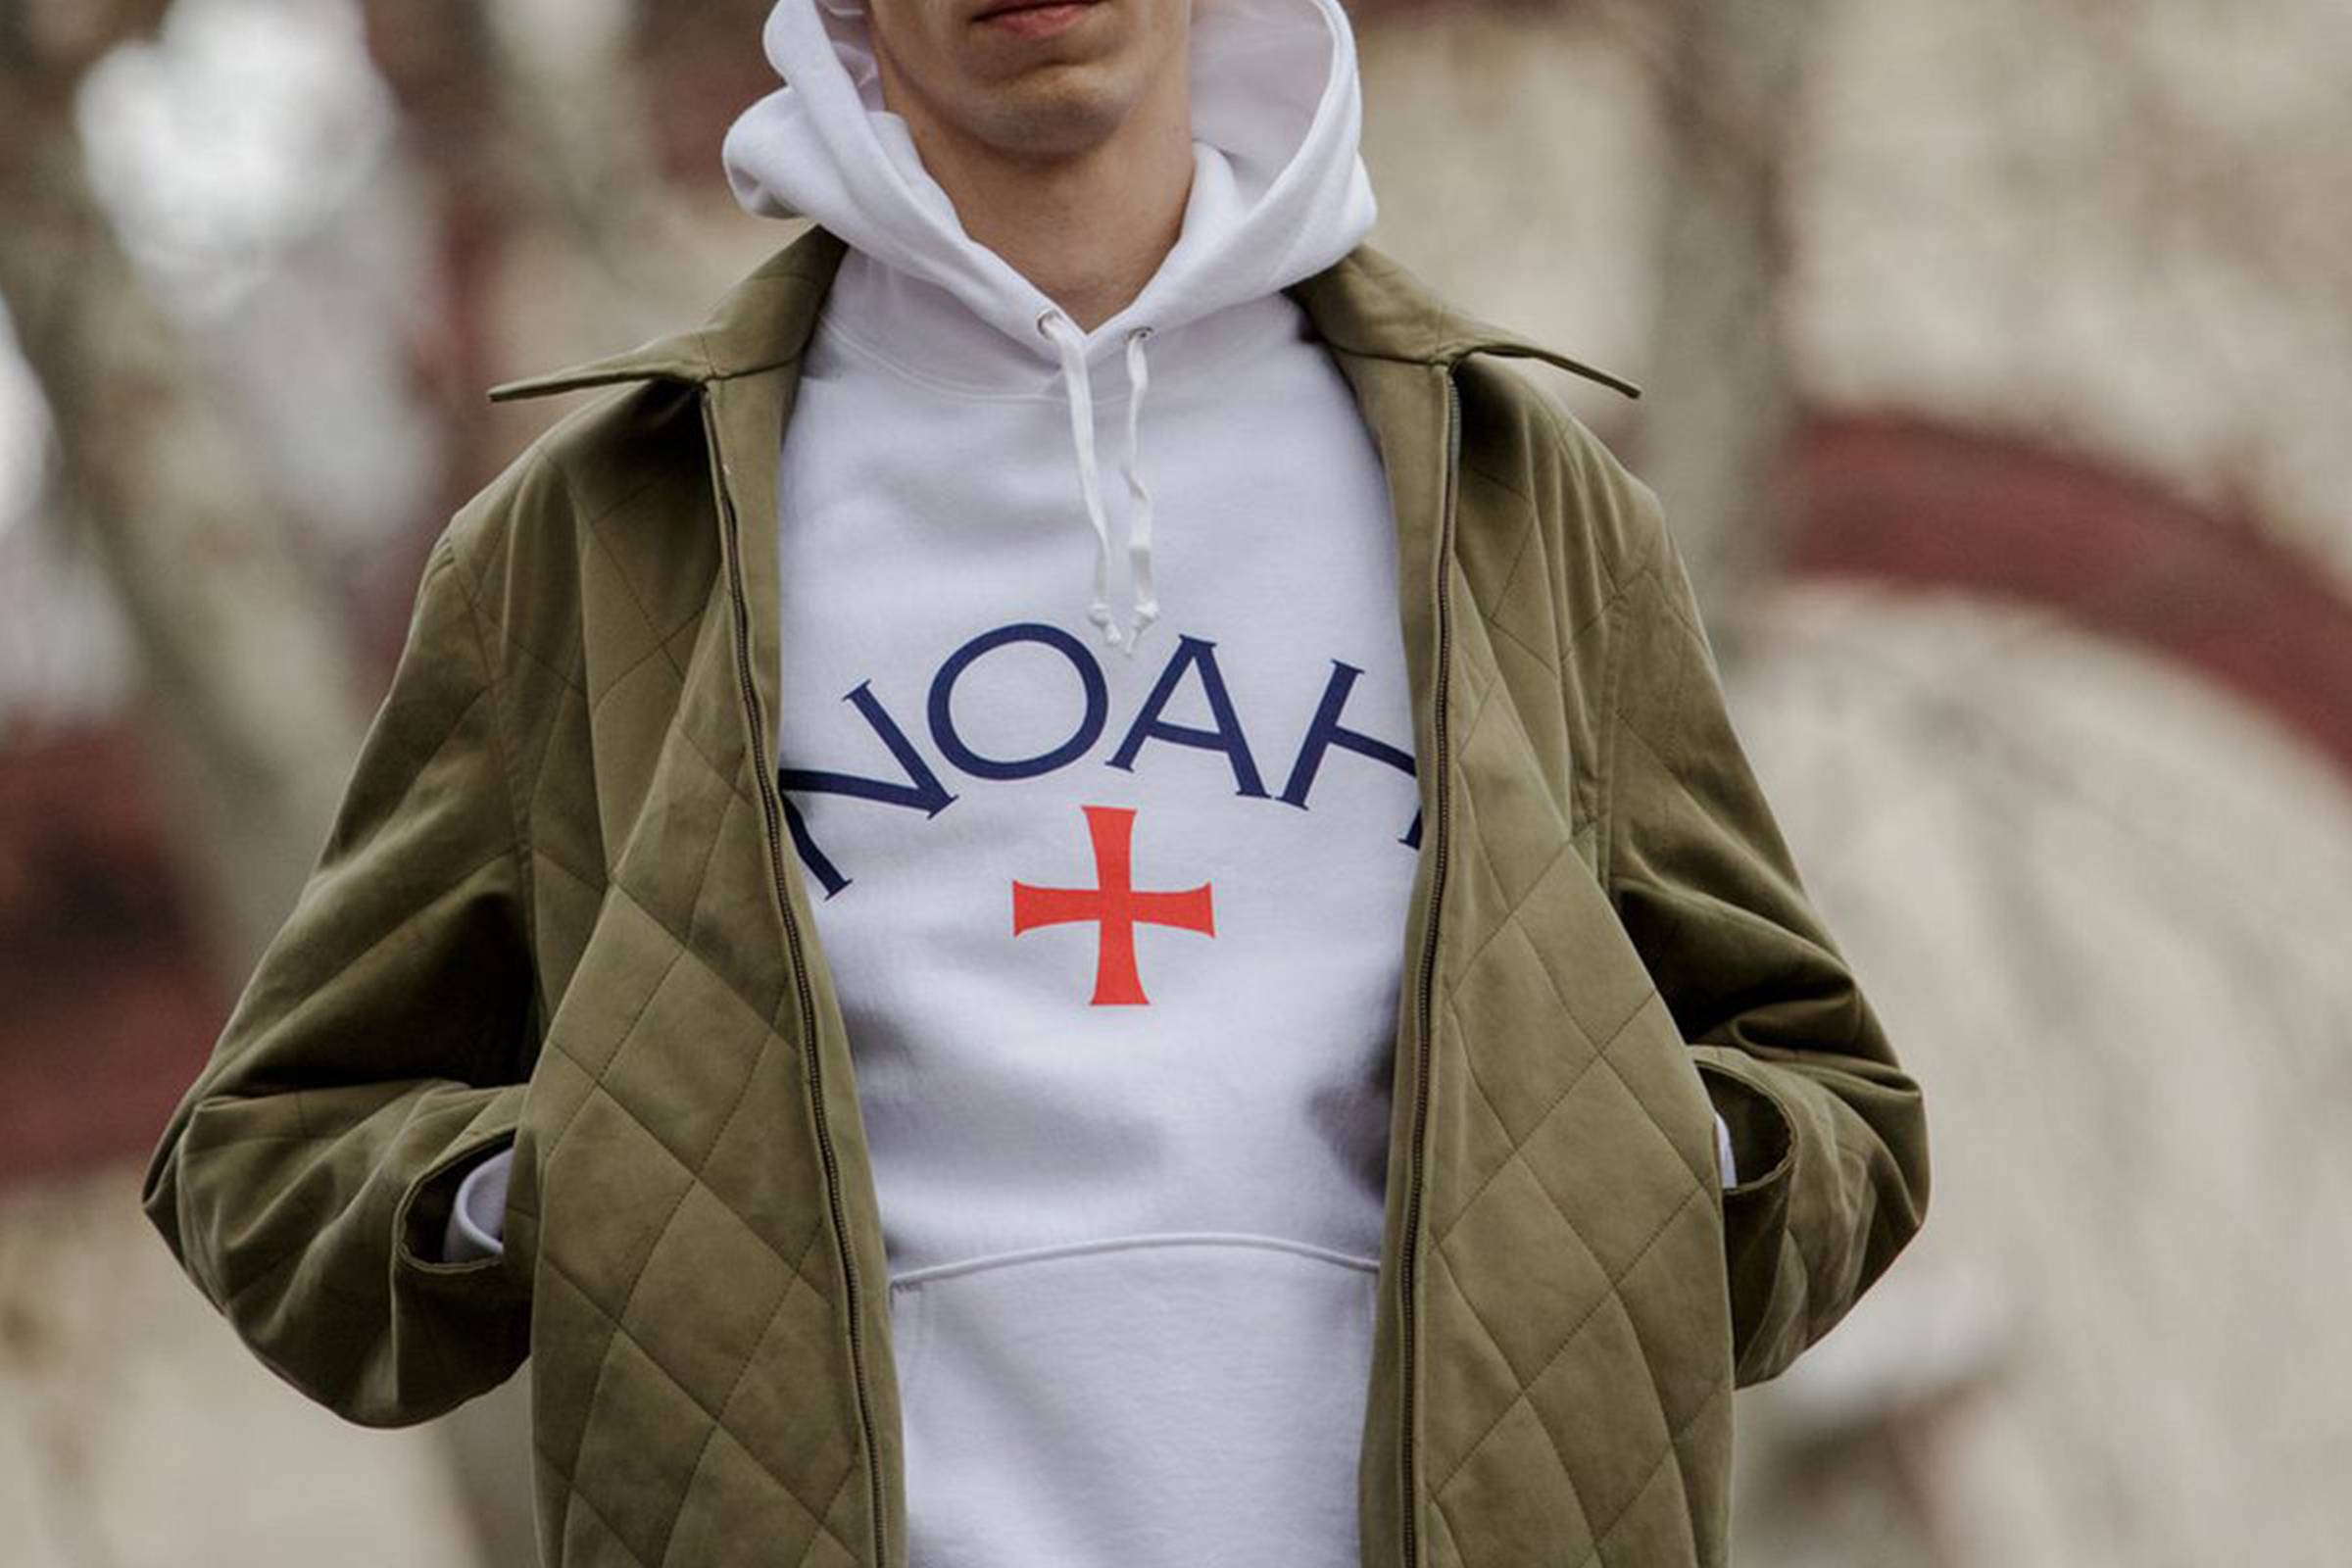 Noah offers an eclectic mix of high-end streetwear staples and luxury items